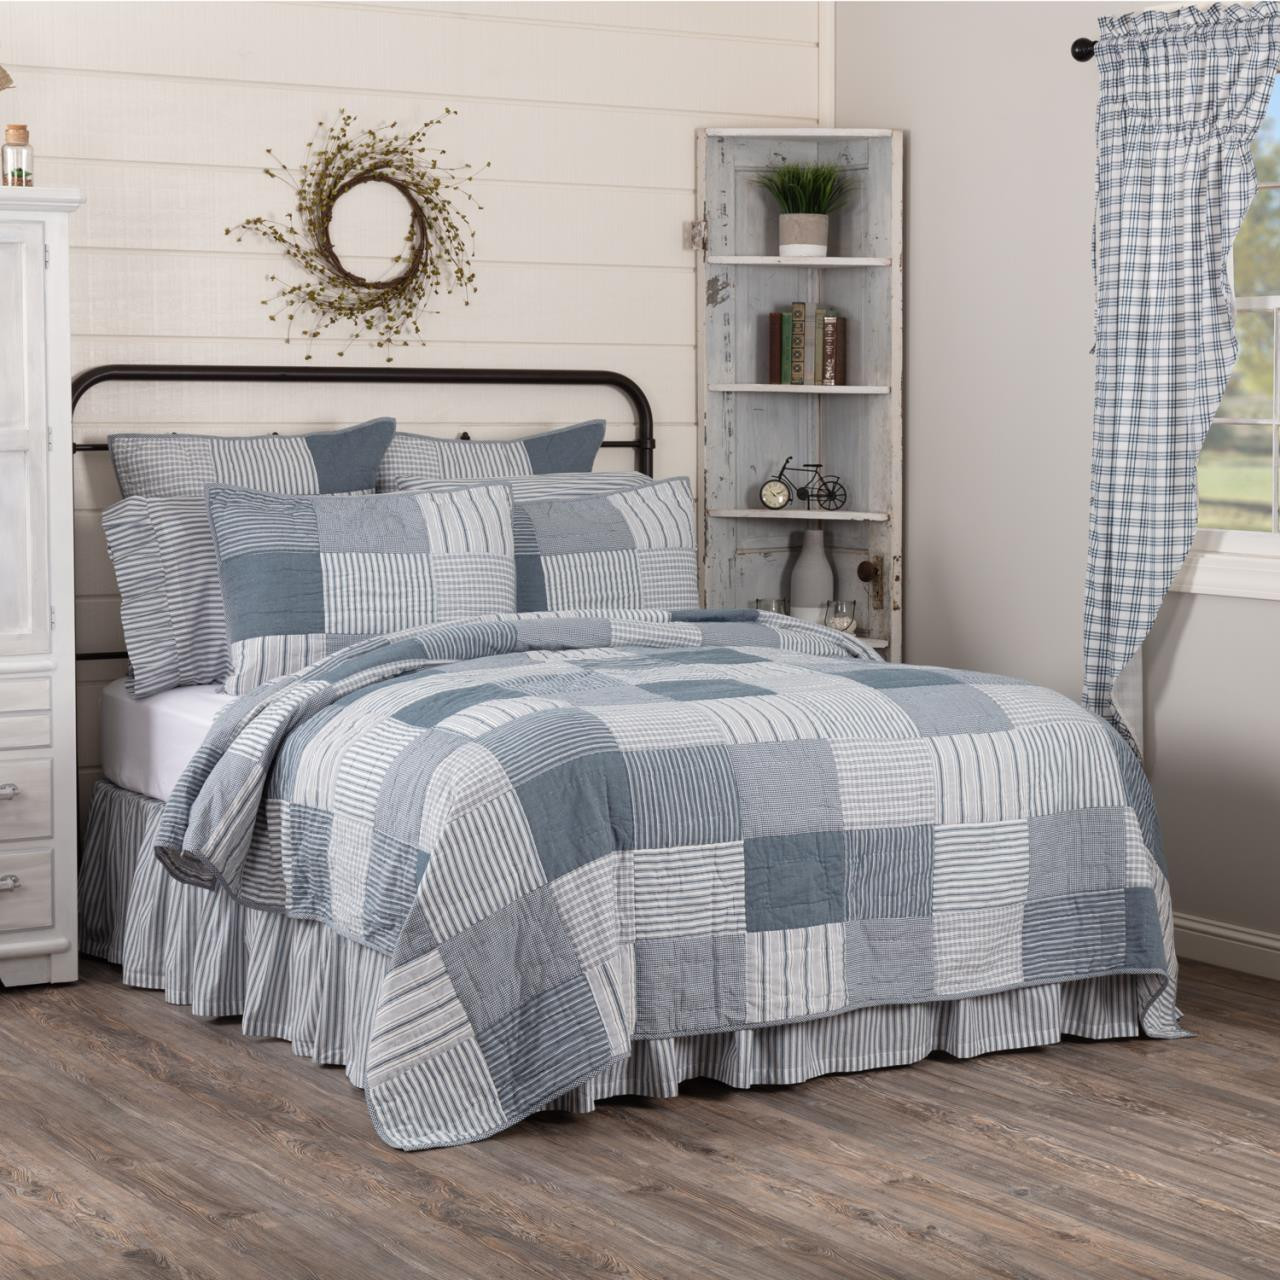 Sawyer Mill Blue Barn Quilt Collection -